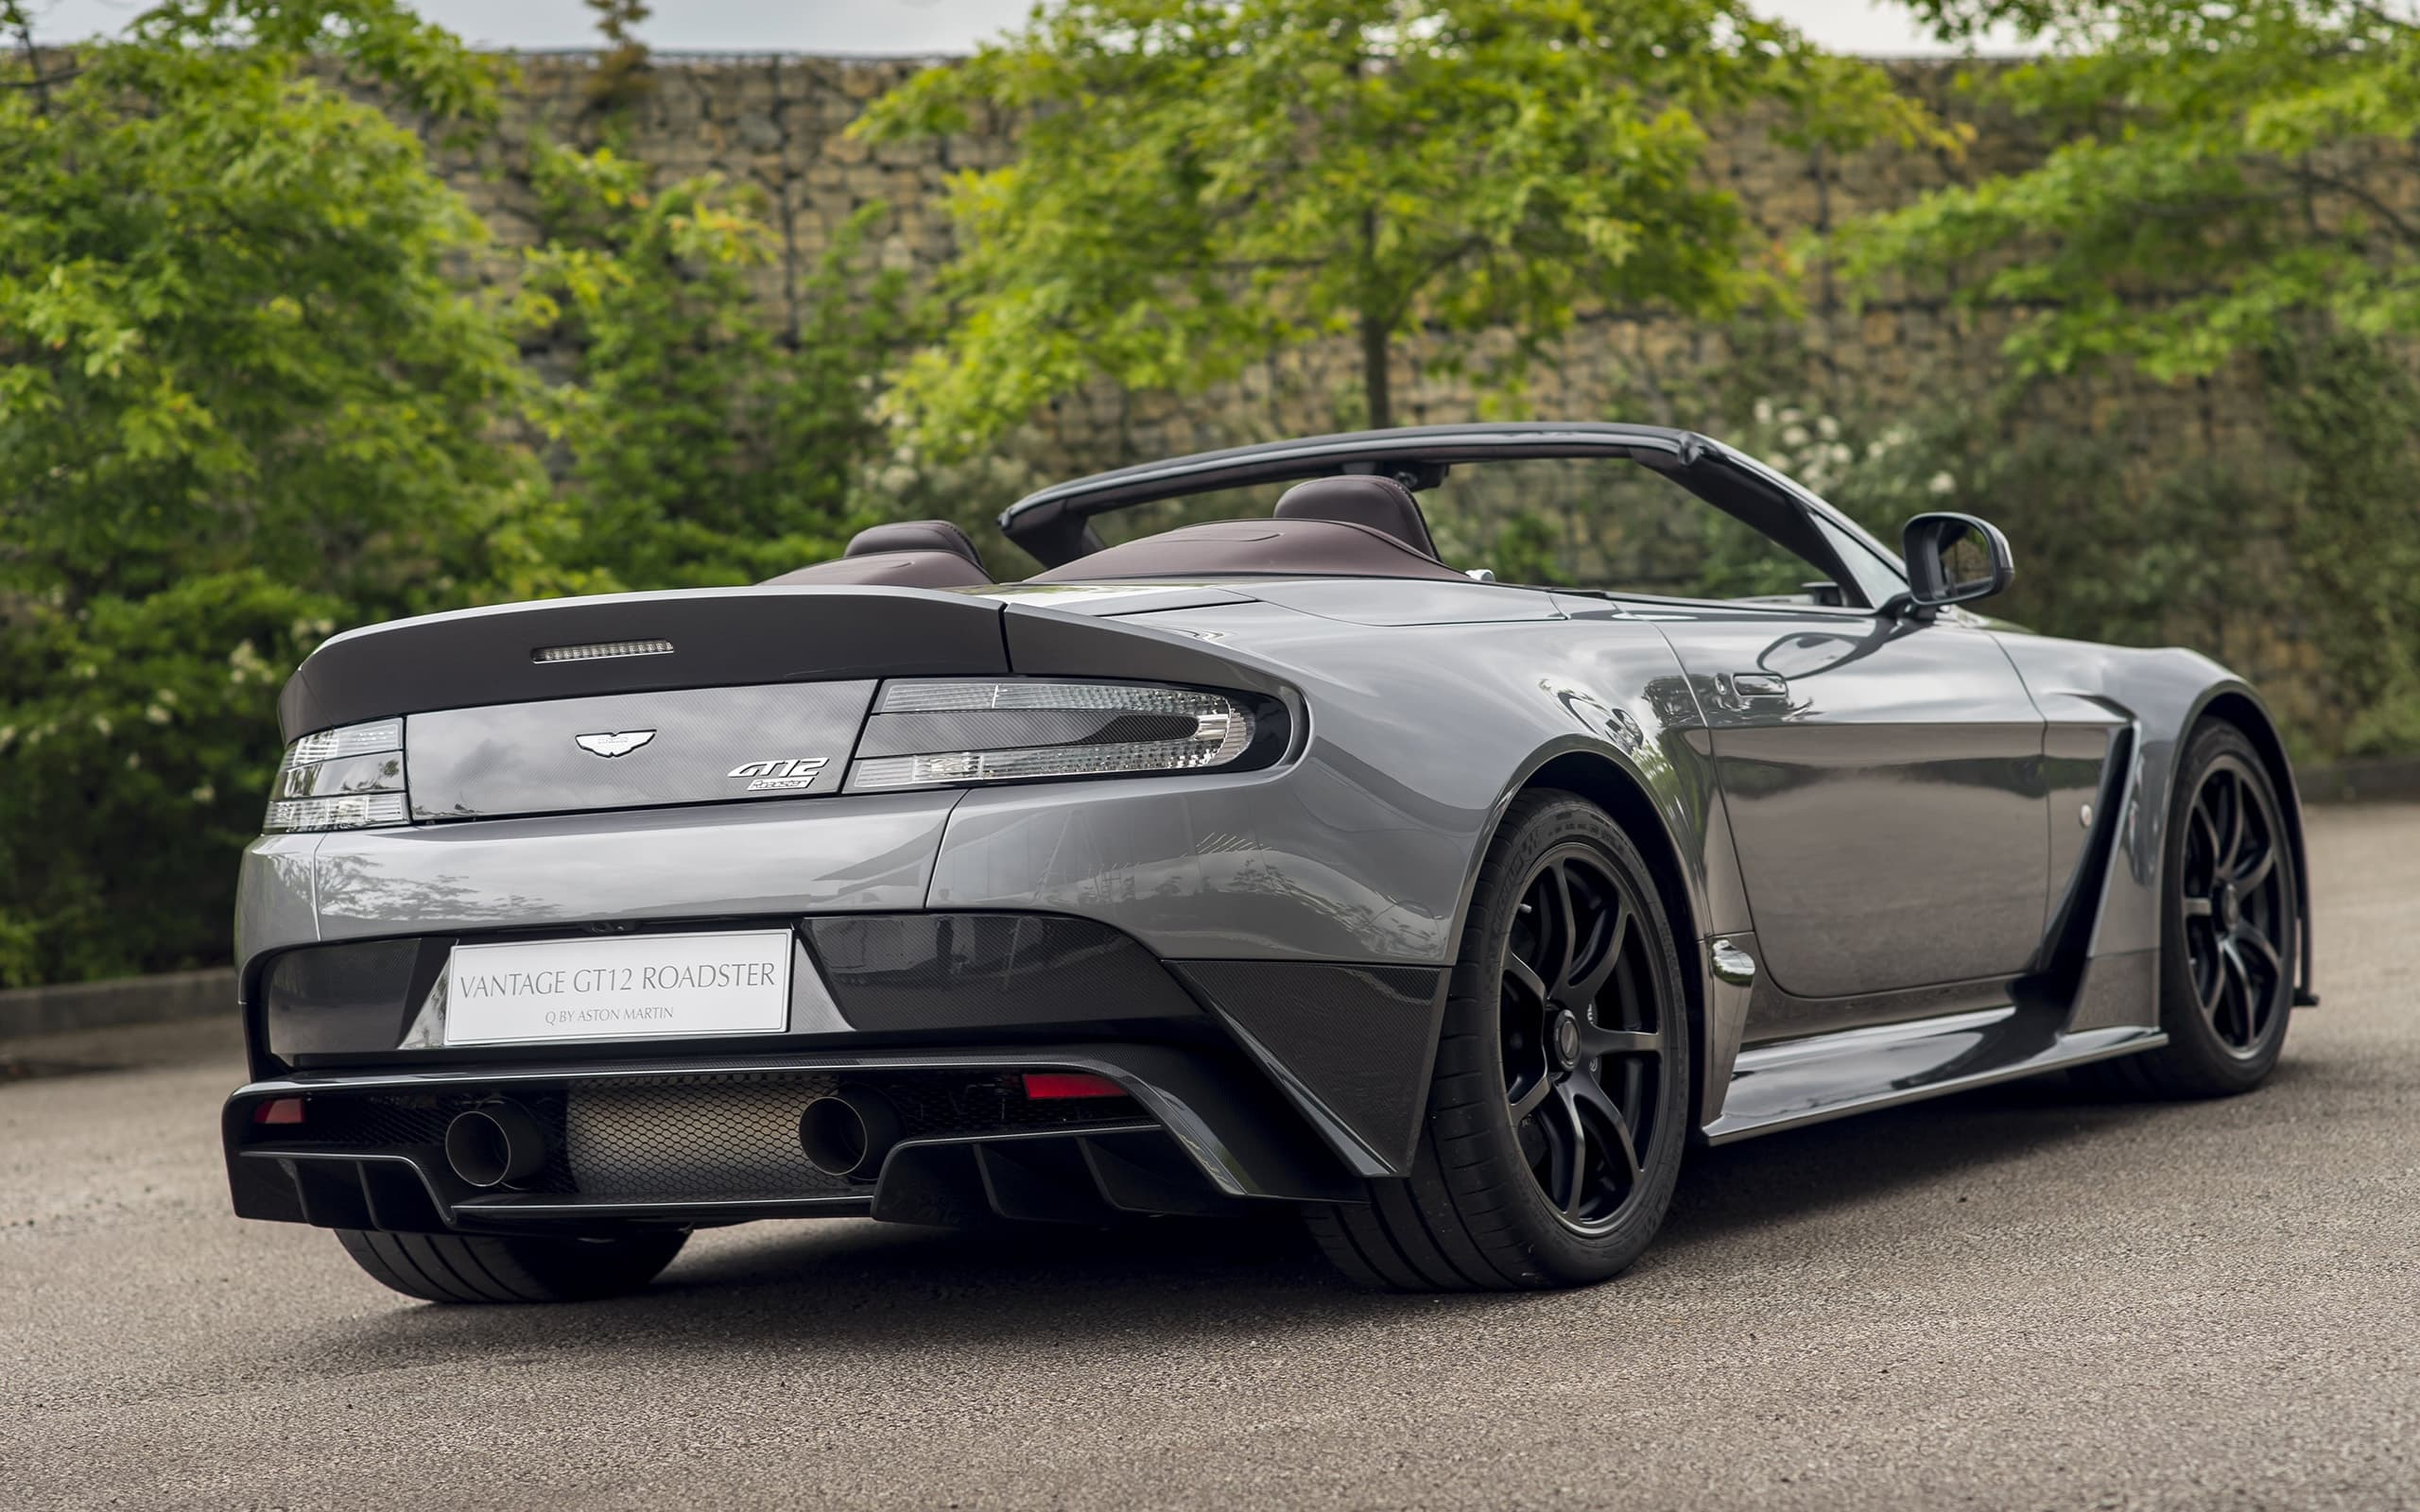 2016 Aston Martin Vantage GT12 Roadster Rear Wallpaper High Quality